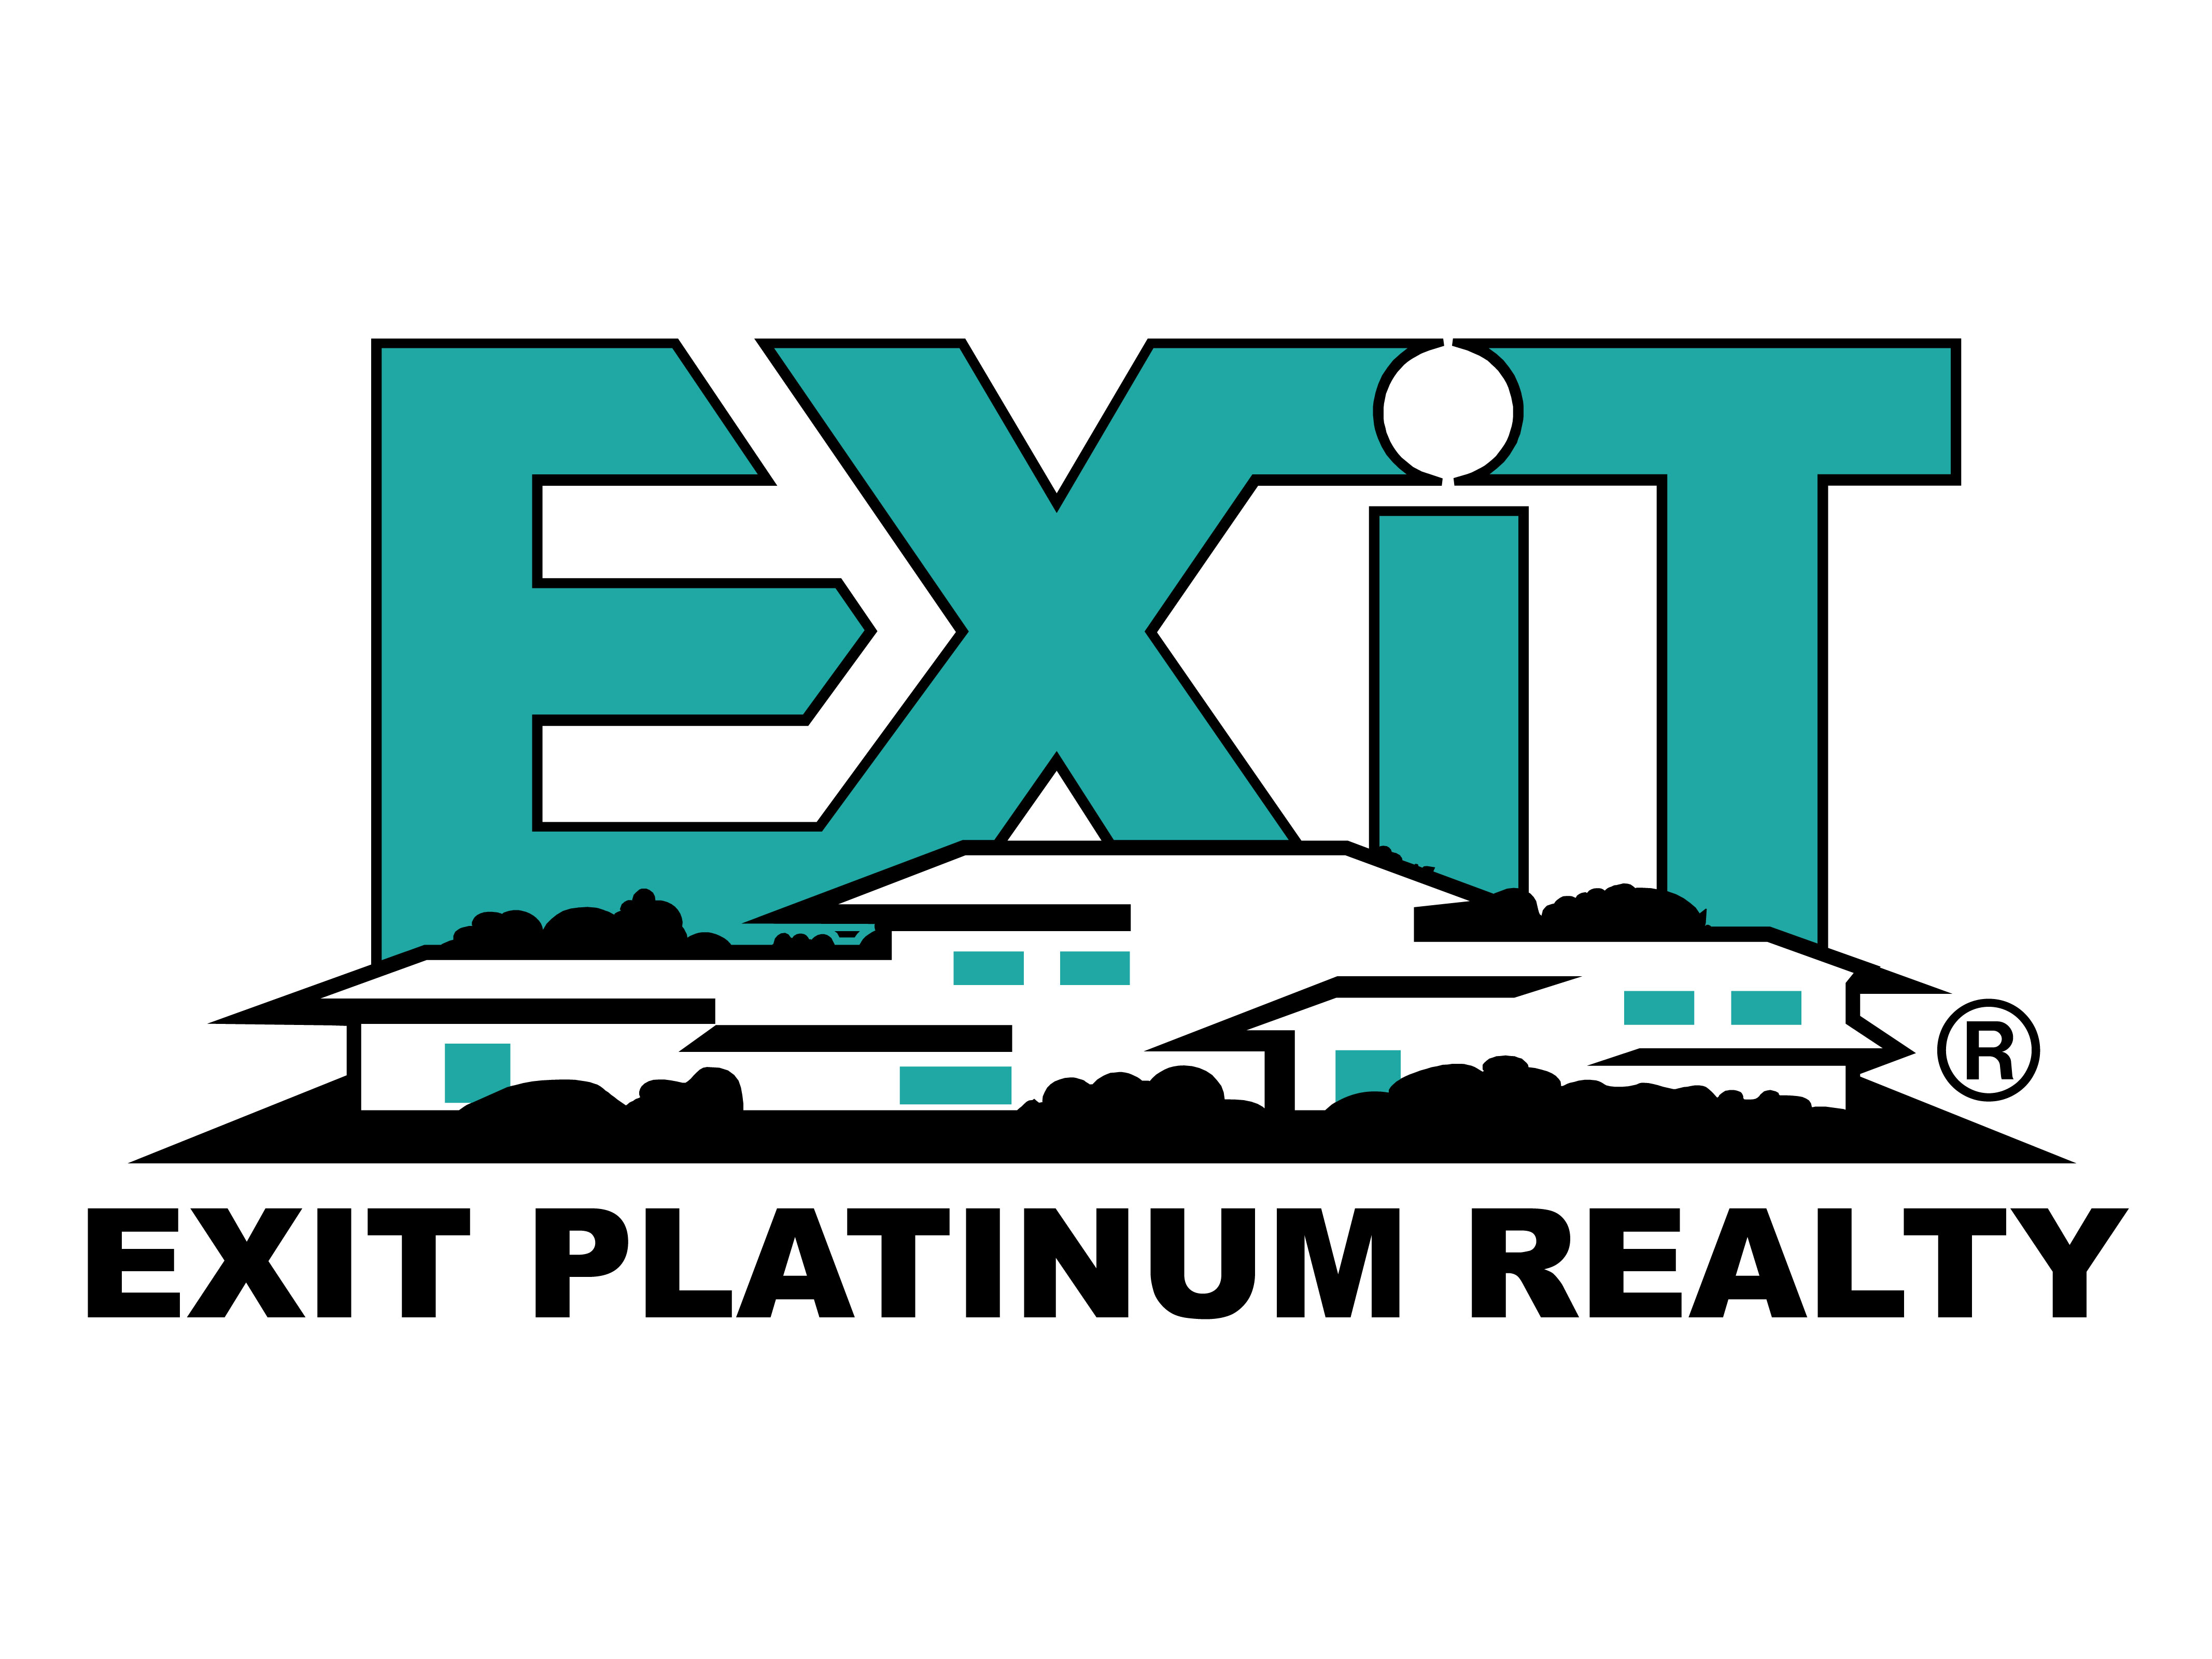 Exit Platinum Realty